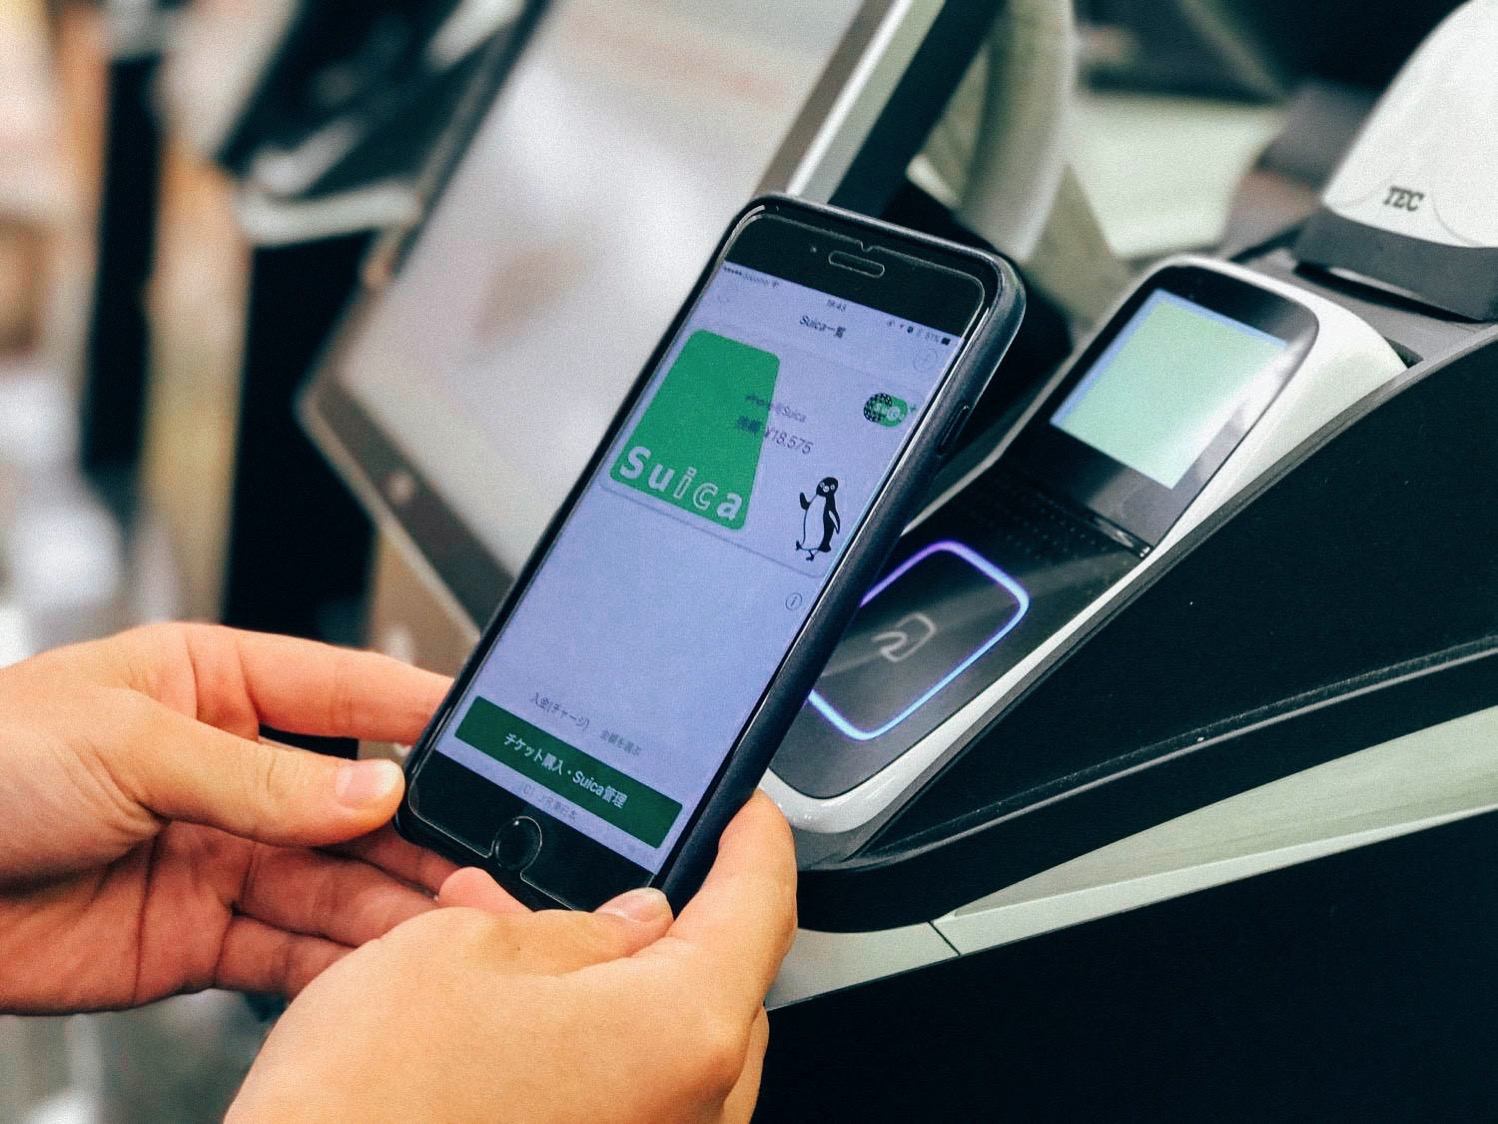 IPhone7 Suica Apple Pay 23 8